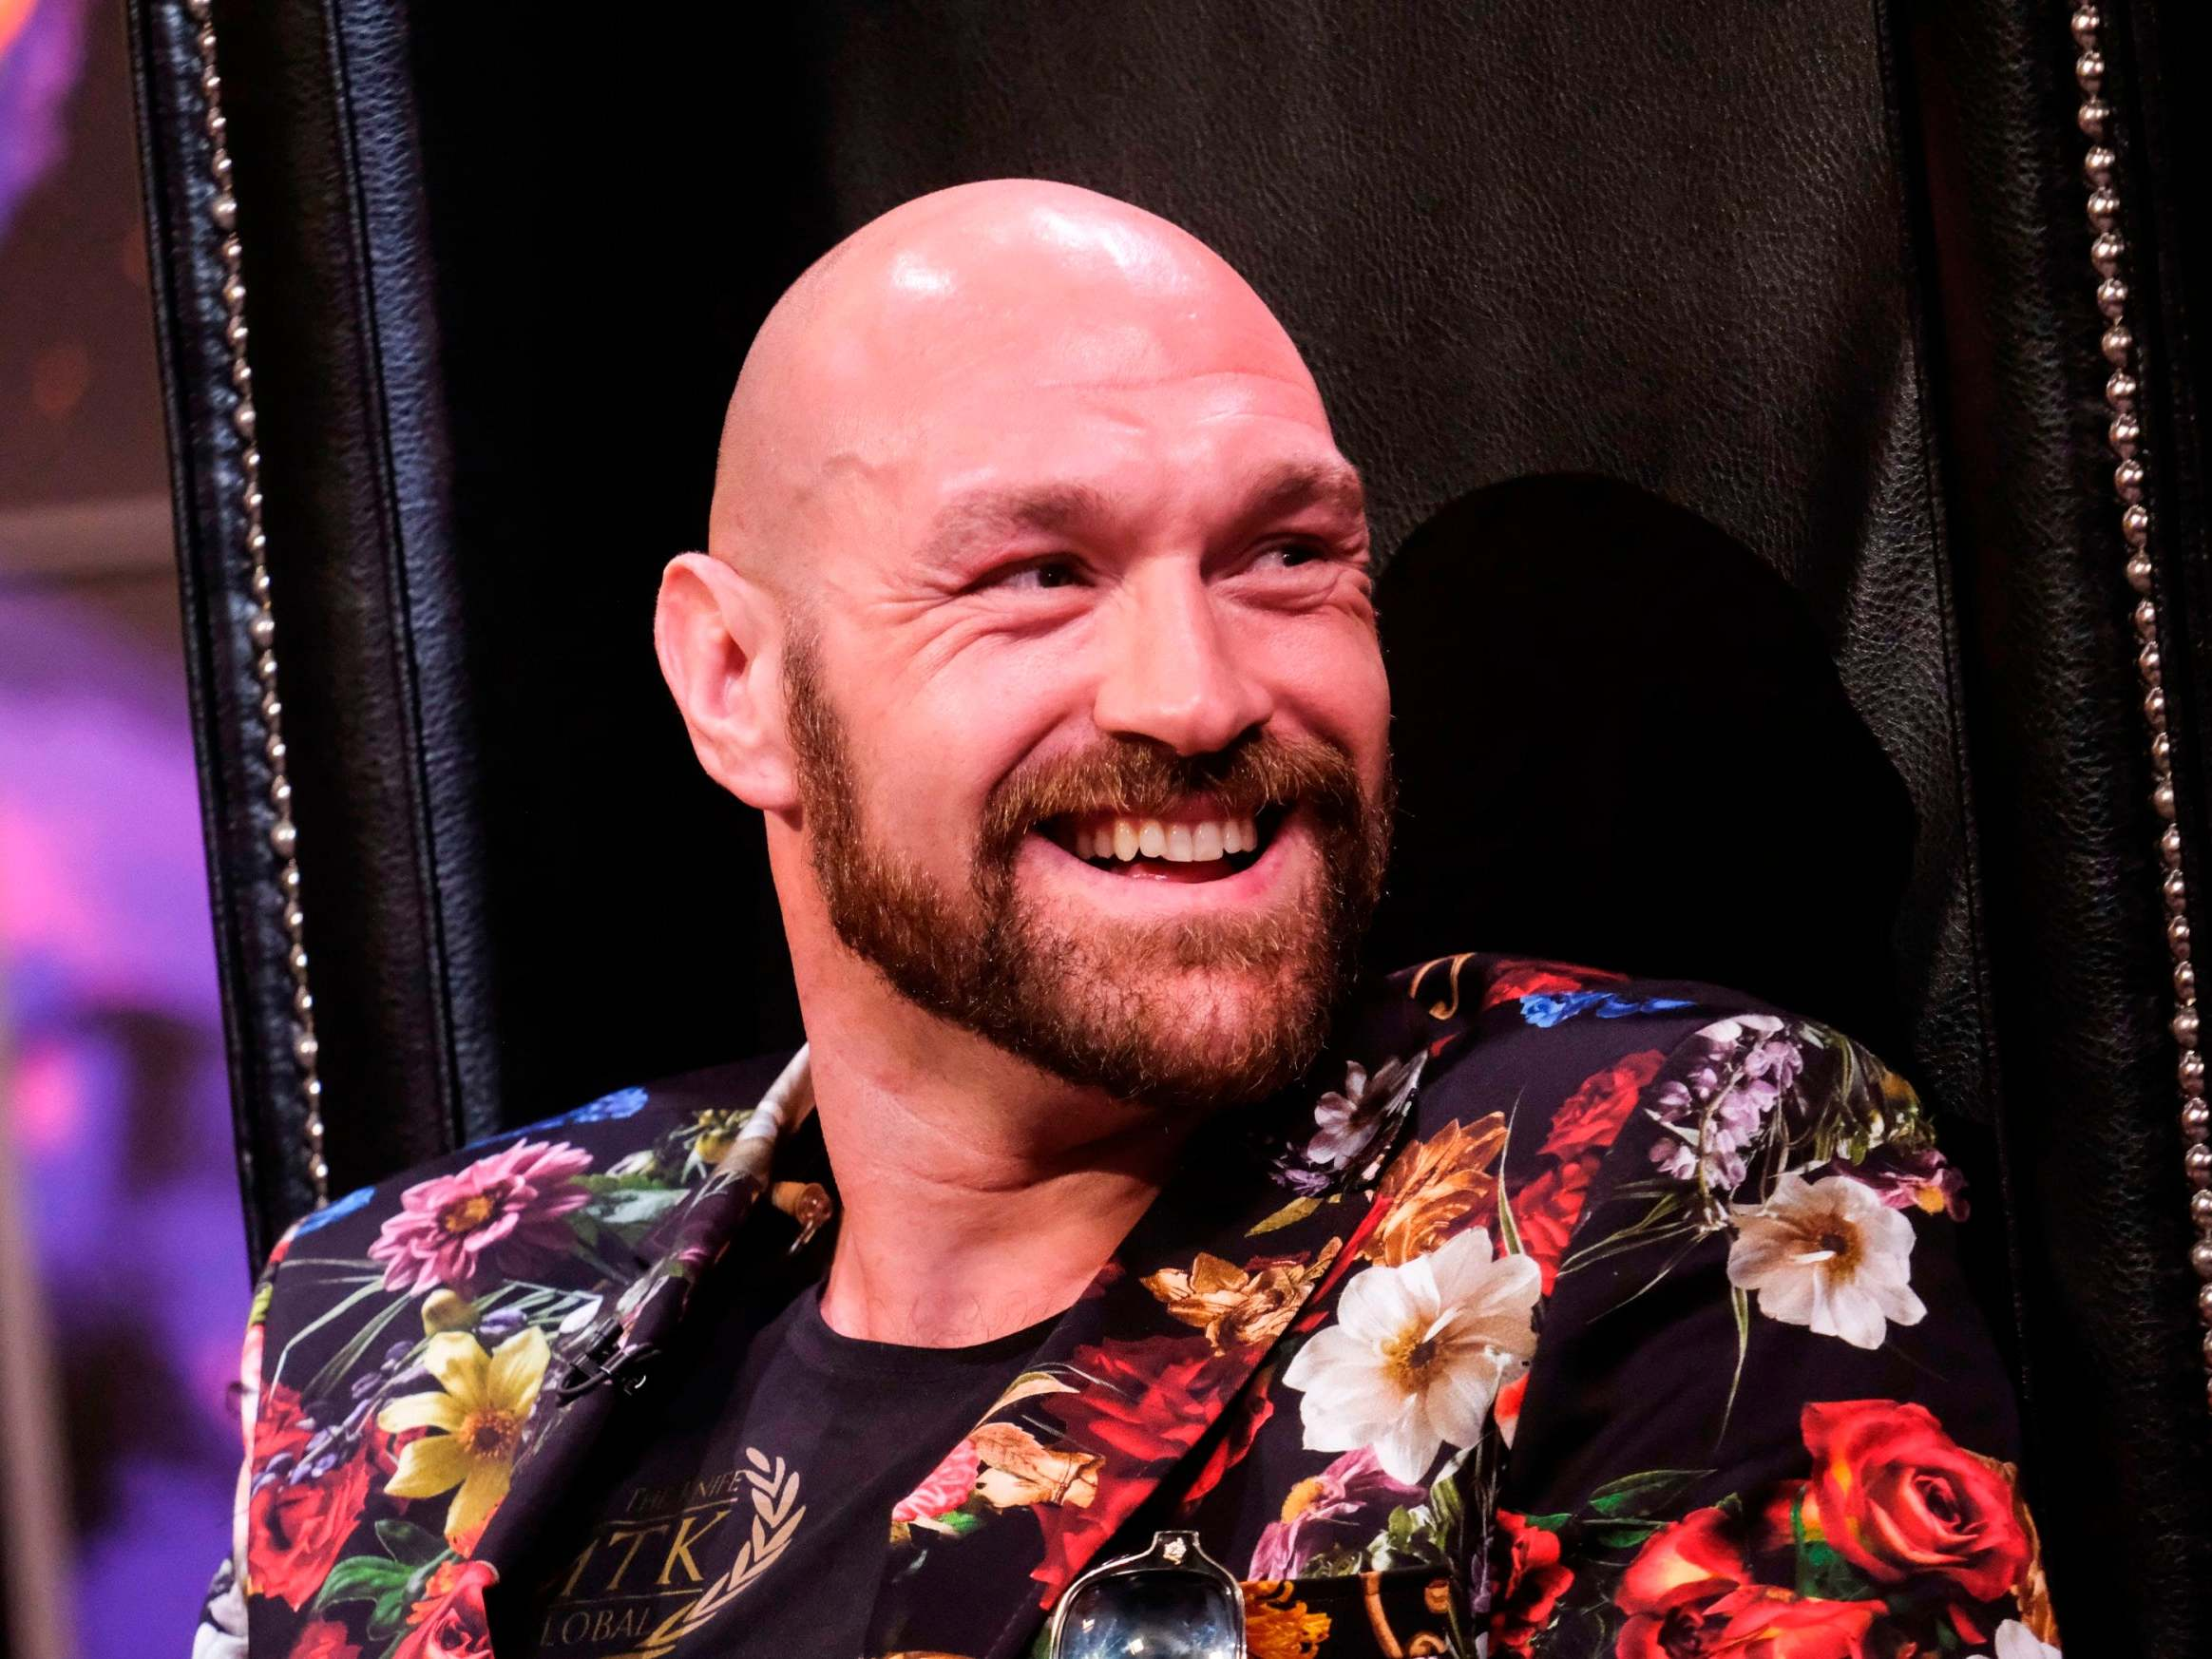 Fallouts, bloody endings and leotards: the fast life of Tyson Fury finally leads him back to Deontay Wilder